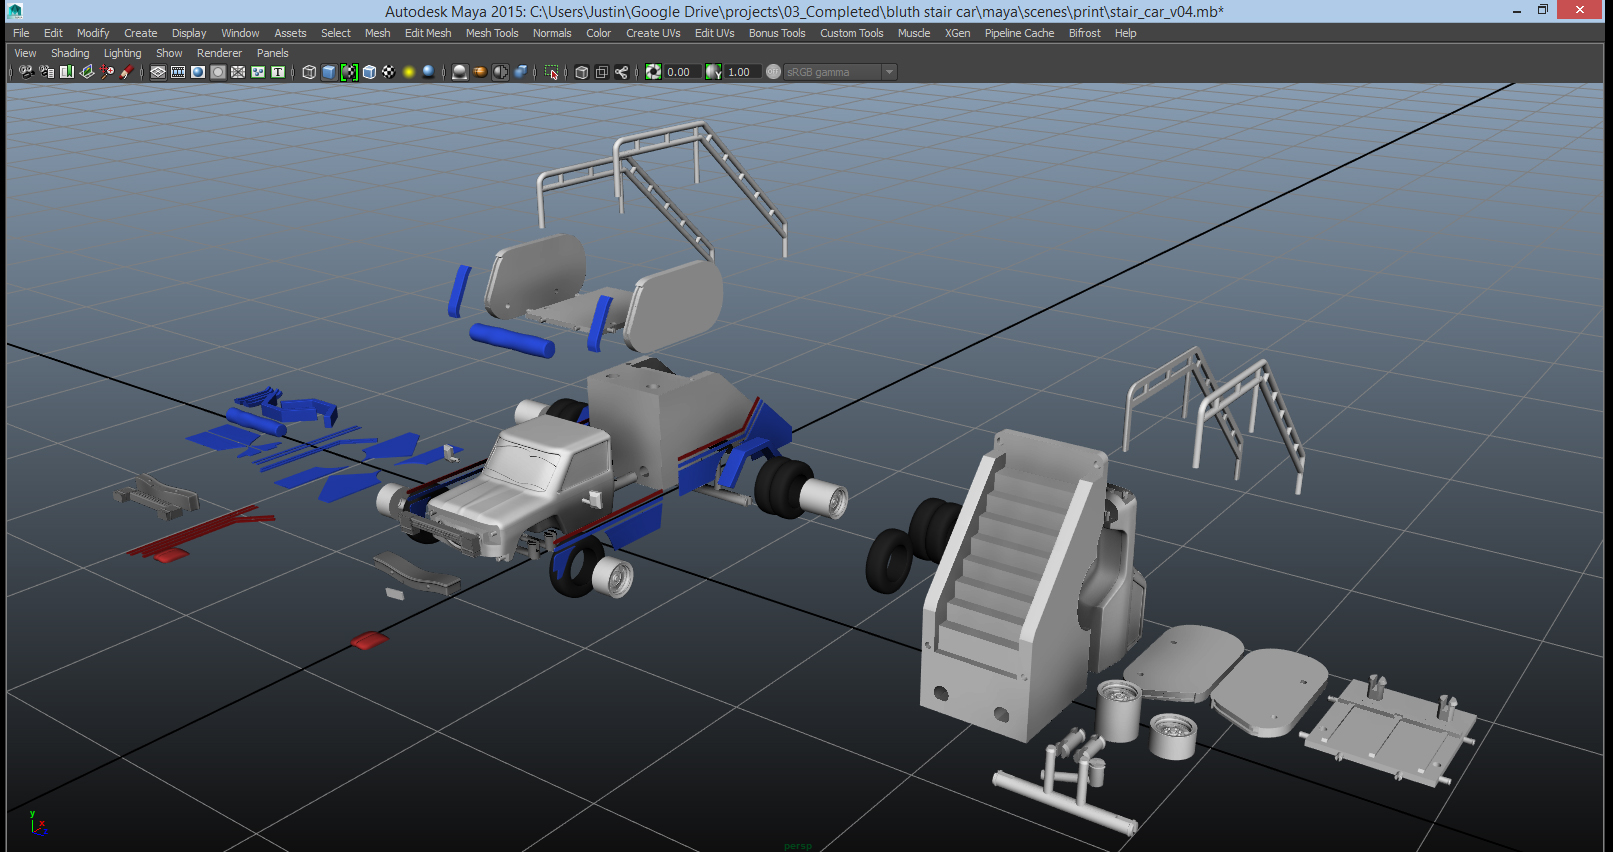 stair_car_maya